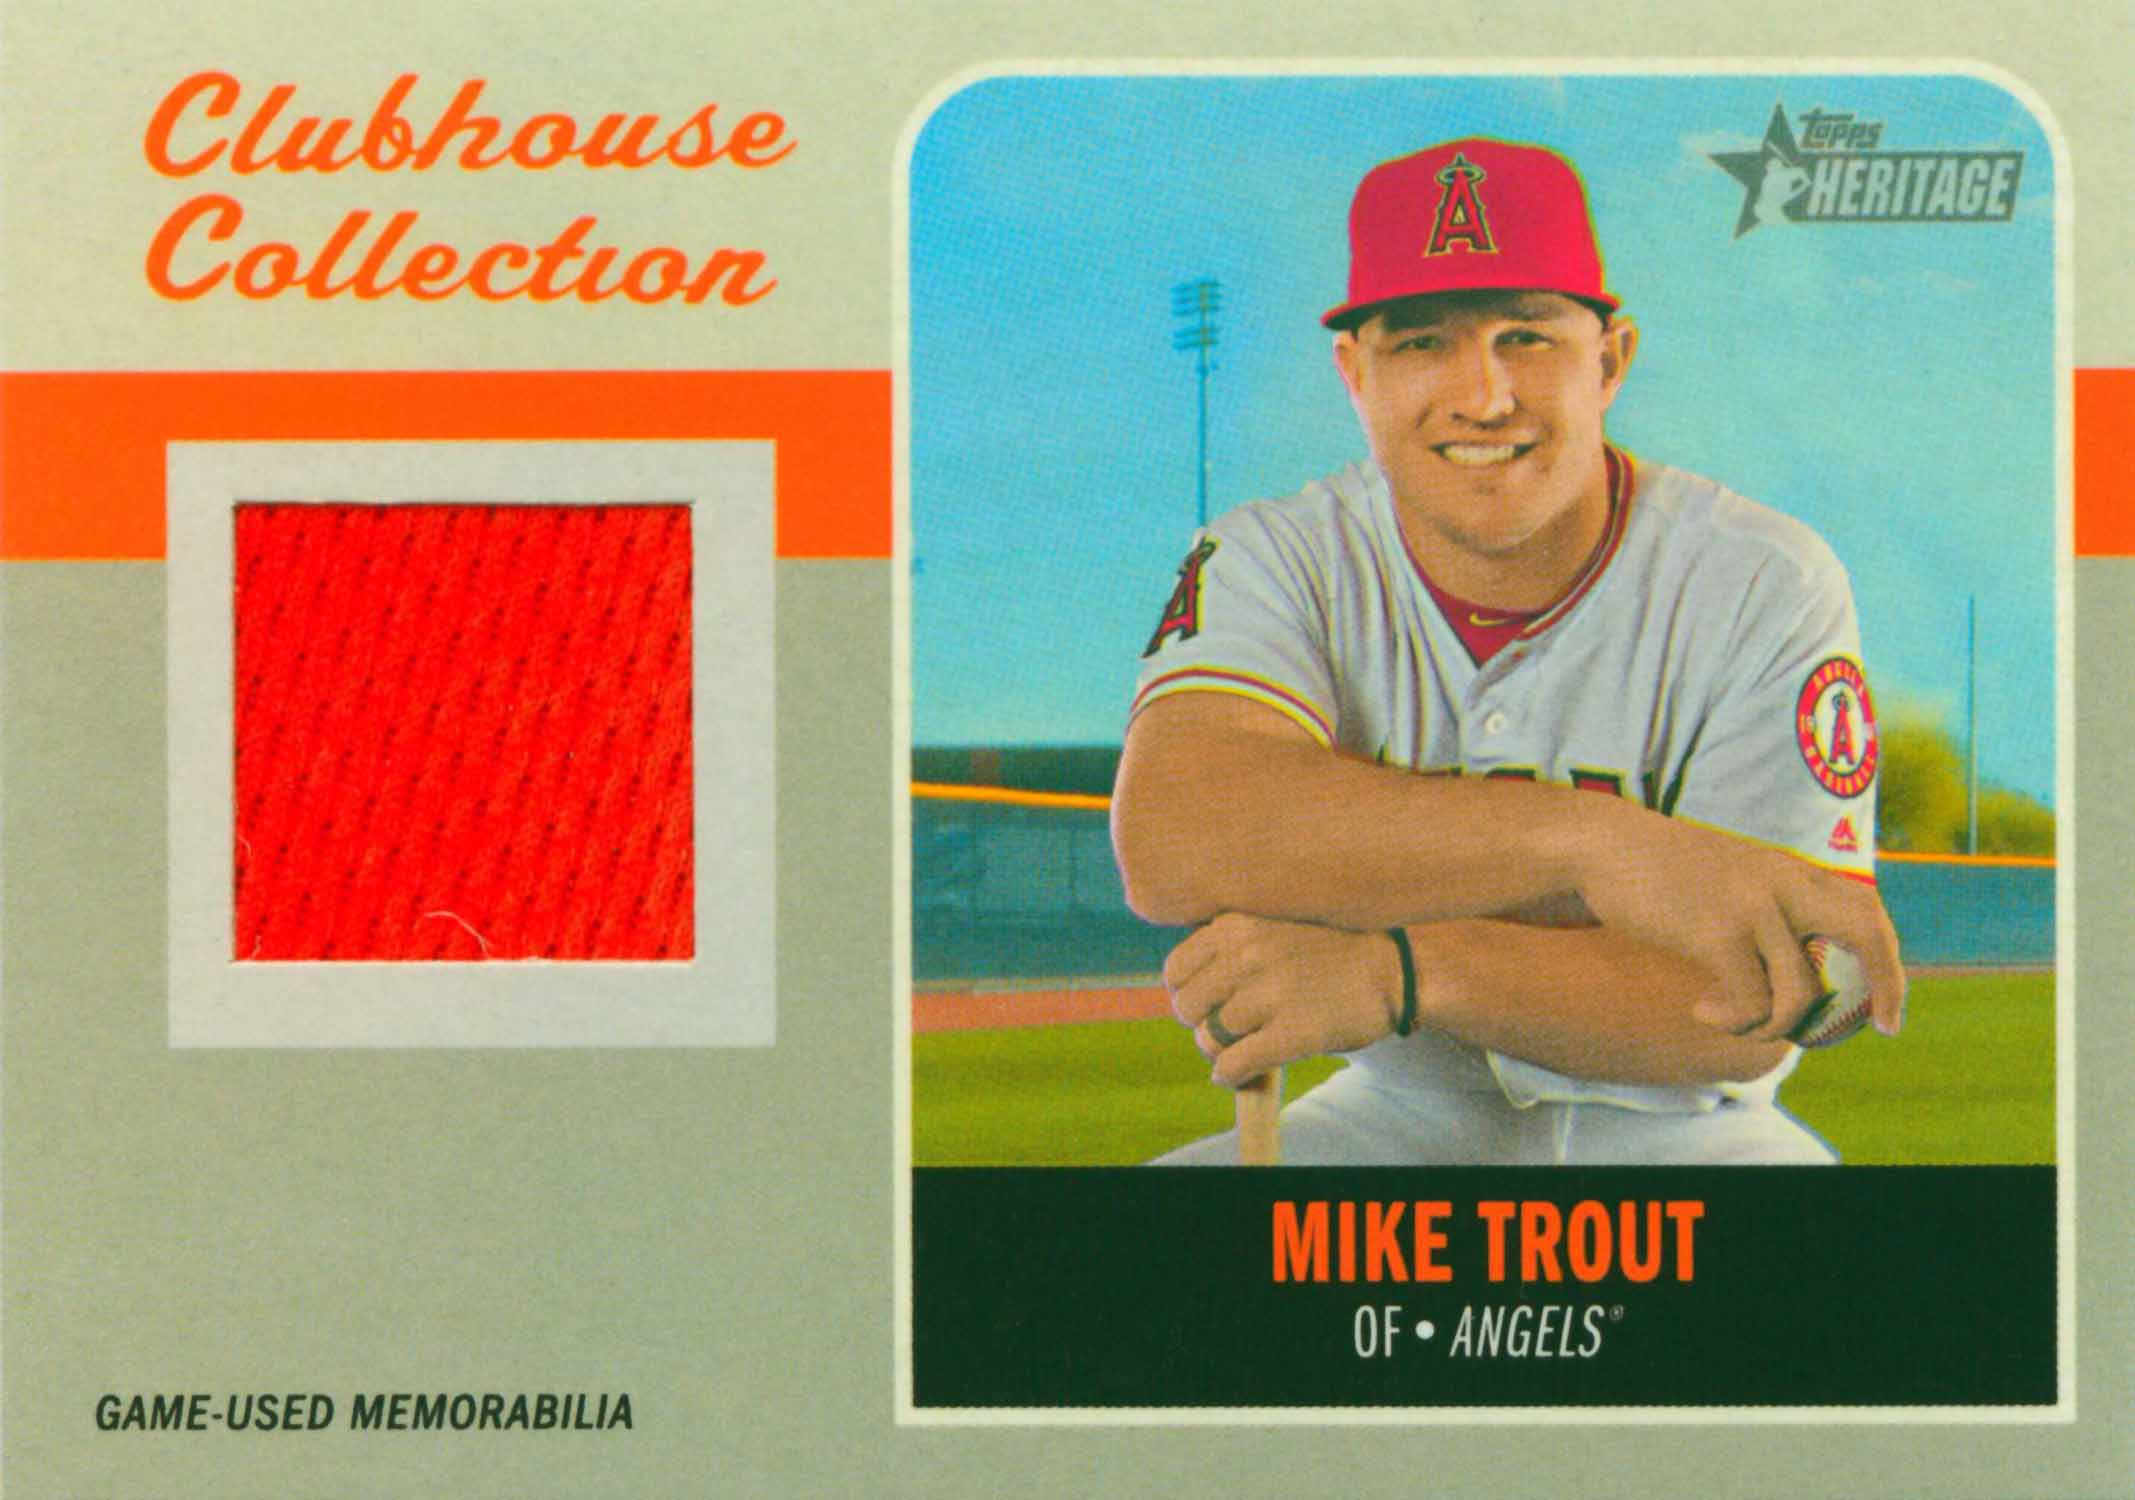 2019 Topps Heritage Clubhouse Collection Relics